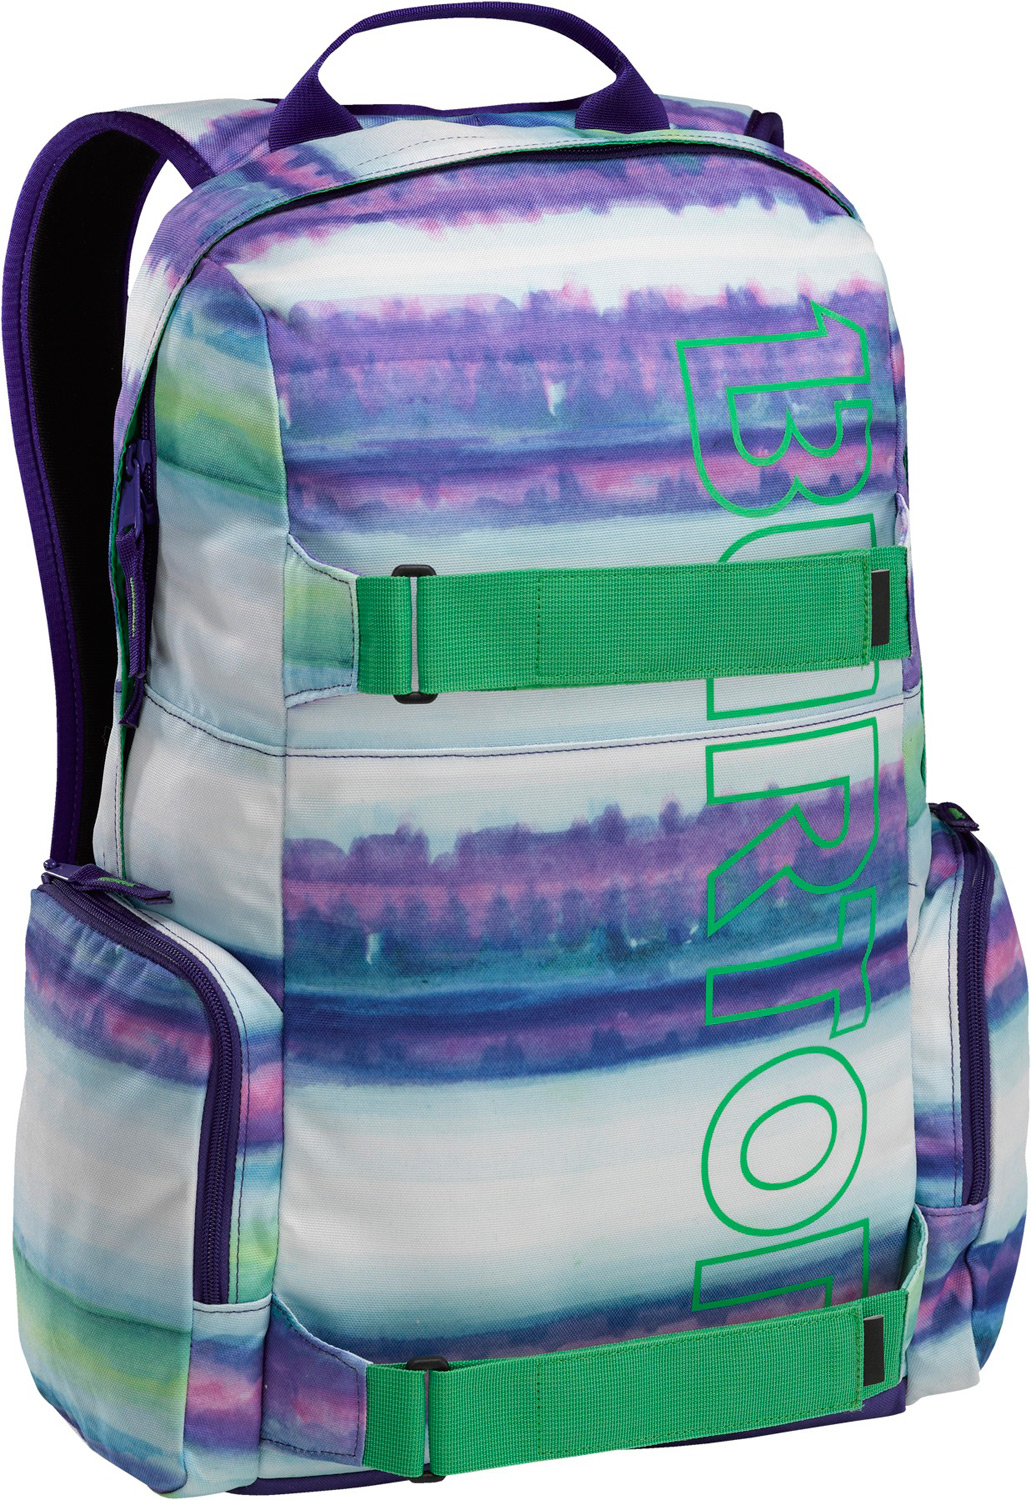 Snowboard Full-featured skate pack with big time branding. Padded sleeve stashes your laptop, exterior organization for easy gear access, plus skate straps for carrying a deck, jacket, or other gear.Key Features of the Burton Emphasis Backpack: Fabrication: 600D Polyester with Distressed PU Print [FREnDS colorway] Fabrication: 1680D Polyester Herringbone PU [cricket Herringbone colorway] Fabrication: 600D Polyester / 300D Polyester Dobby [all other colorways] Padded Laptop Sleeve [11.5in x 10in x 1.5in] [29cm x 26cm x 4cm] Vertical Skate carry cush Ergonomic Shoulder Harness with adjustable Sternum Strap Fleece-Lined Internal Pocket custom Ear Buds Included with FREnDS colorway [18.5in x 12in x 7.5in] [47cm x 31cm x 19cm] 26L - $49.95